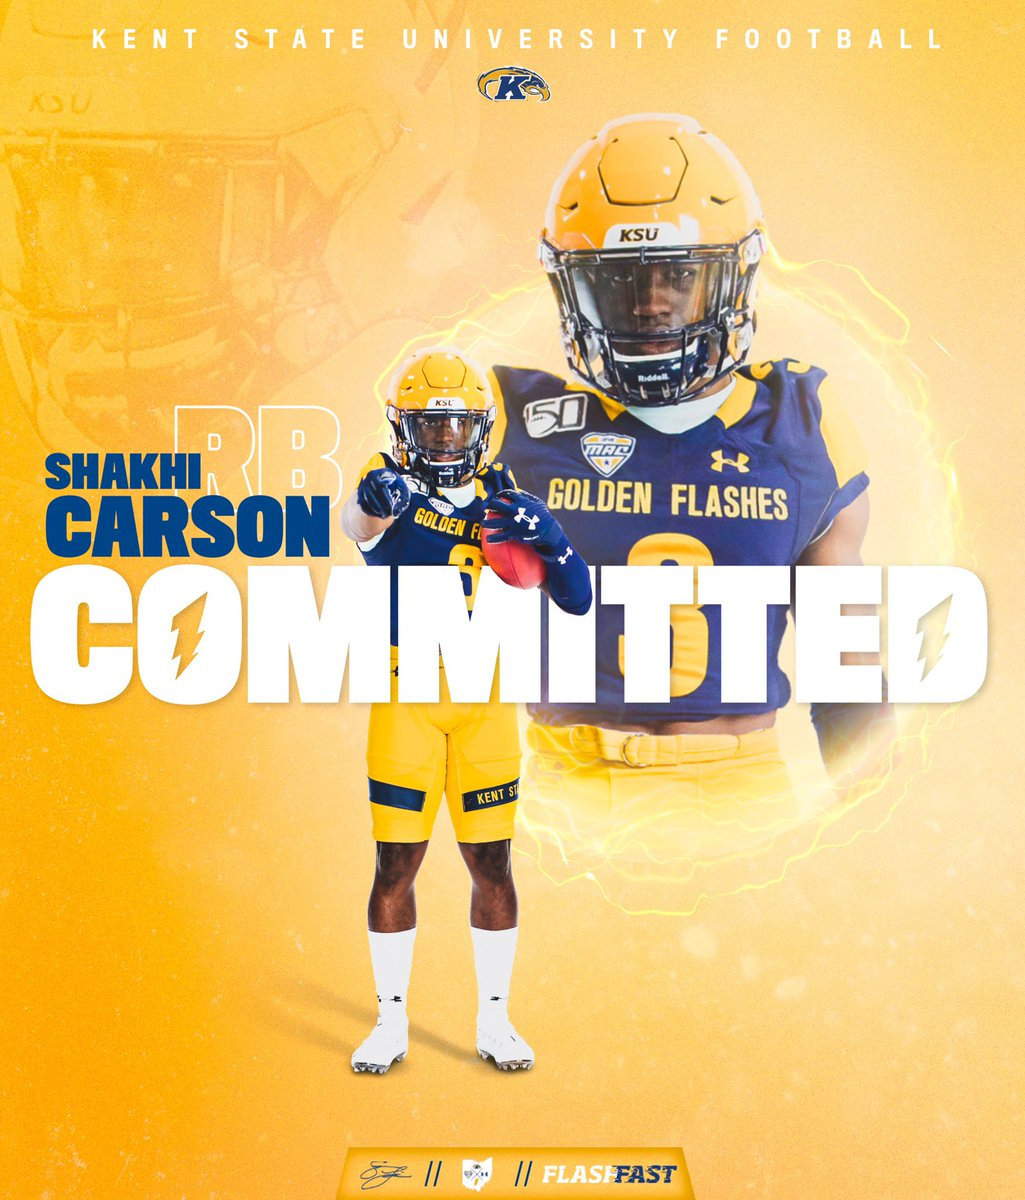 IM COMMITTED!!!⚡️